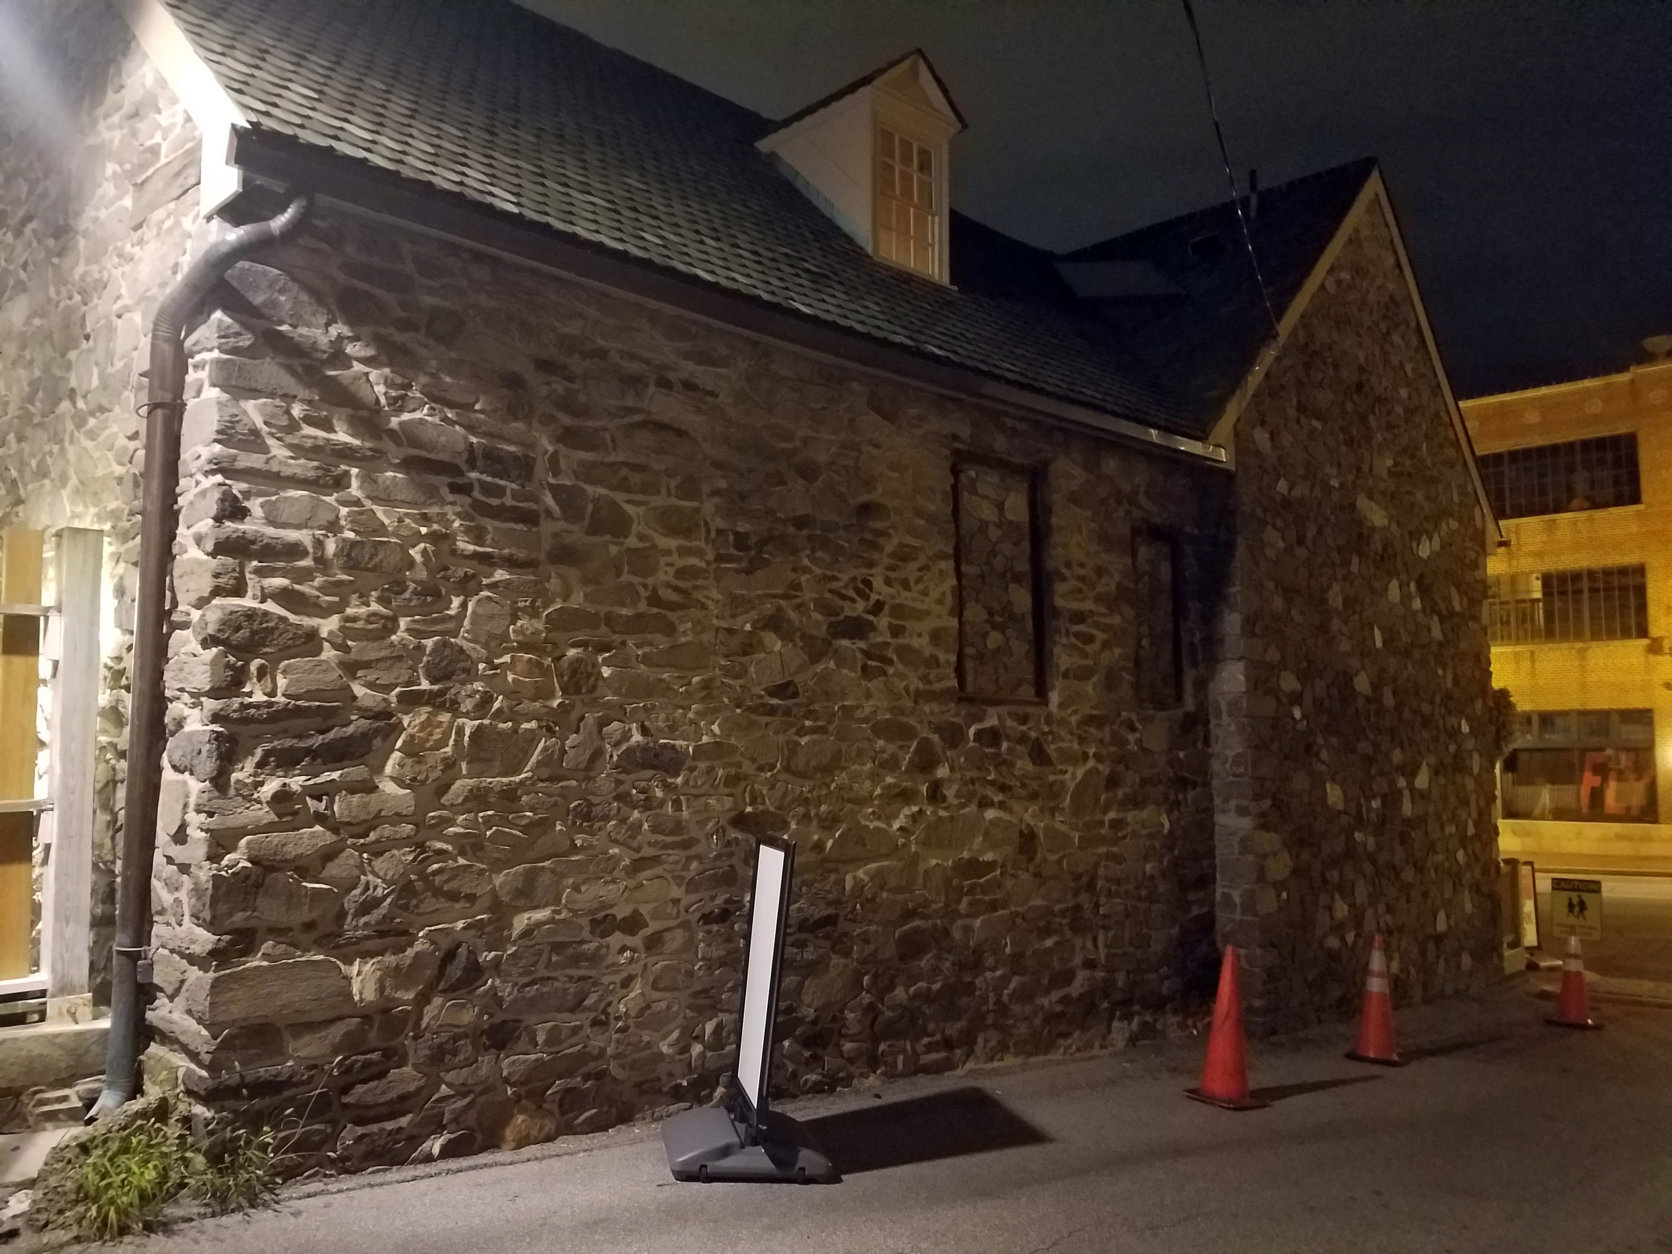 One of the ghosts said to haunt the Old Stone House is known for malicious behavior. (WTOP/Will Vitka)